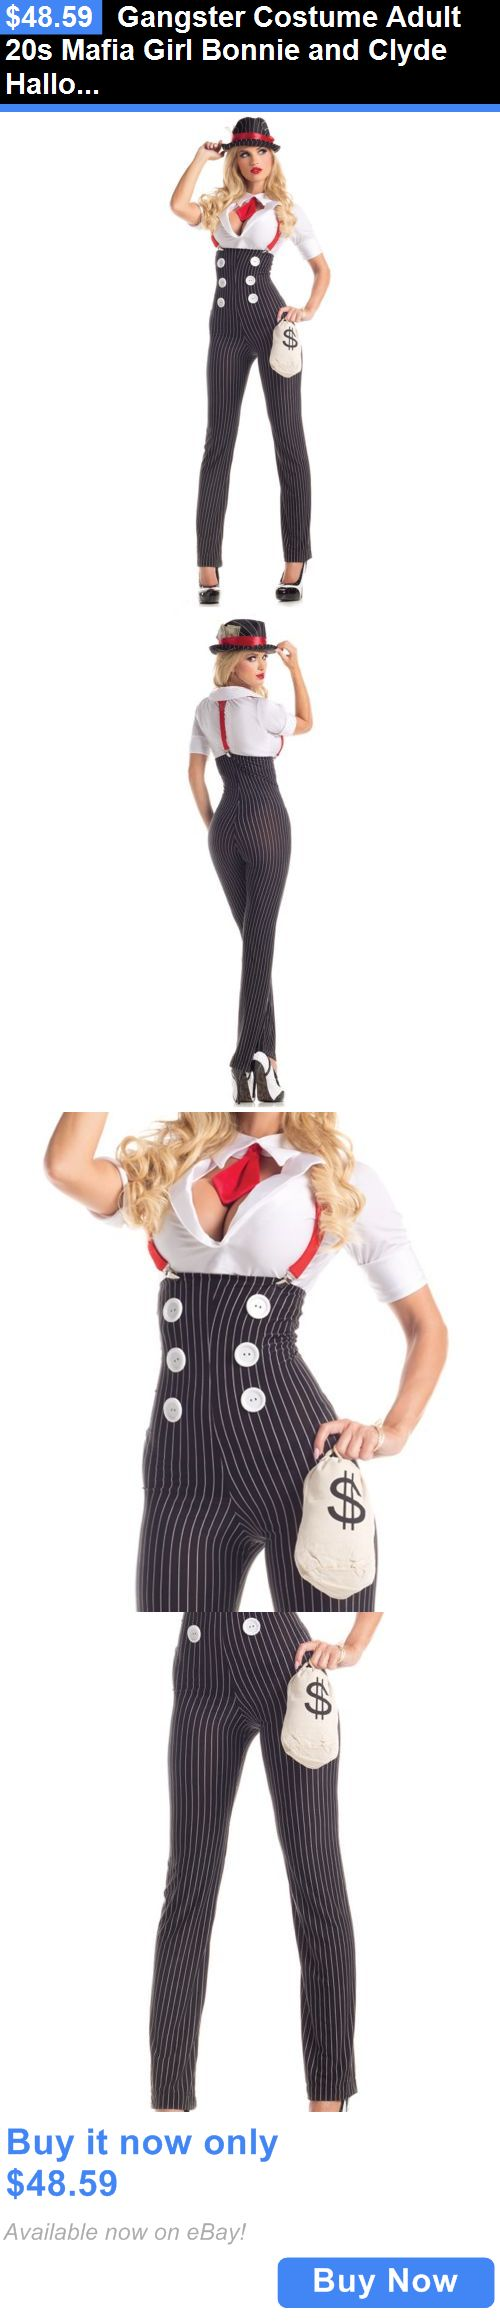 Halloween Costumes Women: Gangster Costume Adult 20S Mafia Girl Bonnie And Clyde Halloween Fancy Dress BUY IT NOW ONLY: $48.59